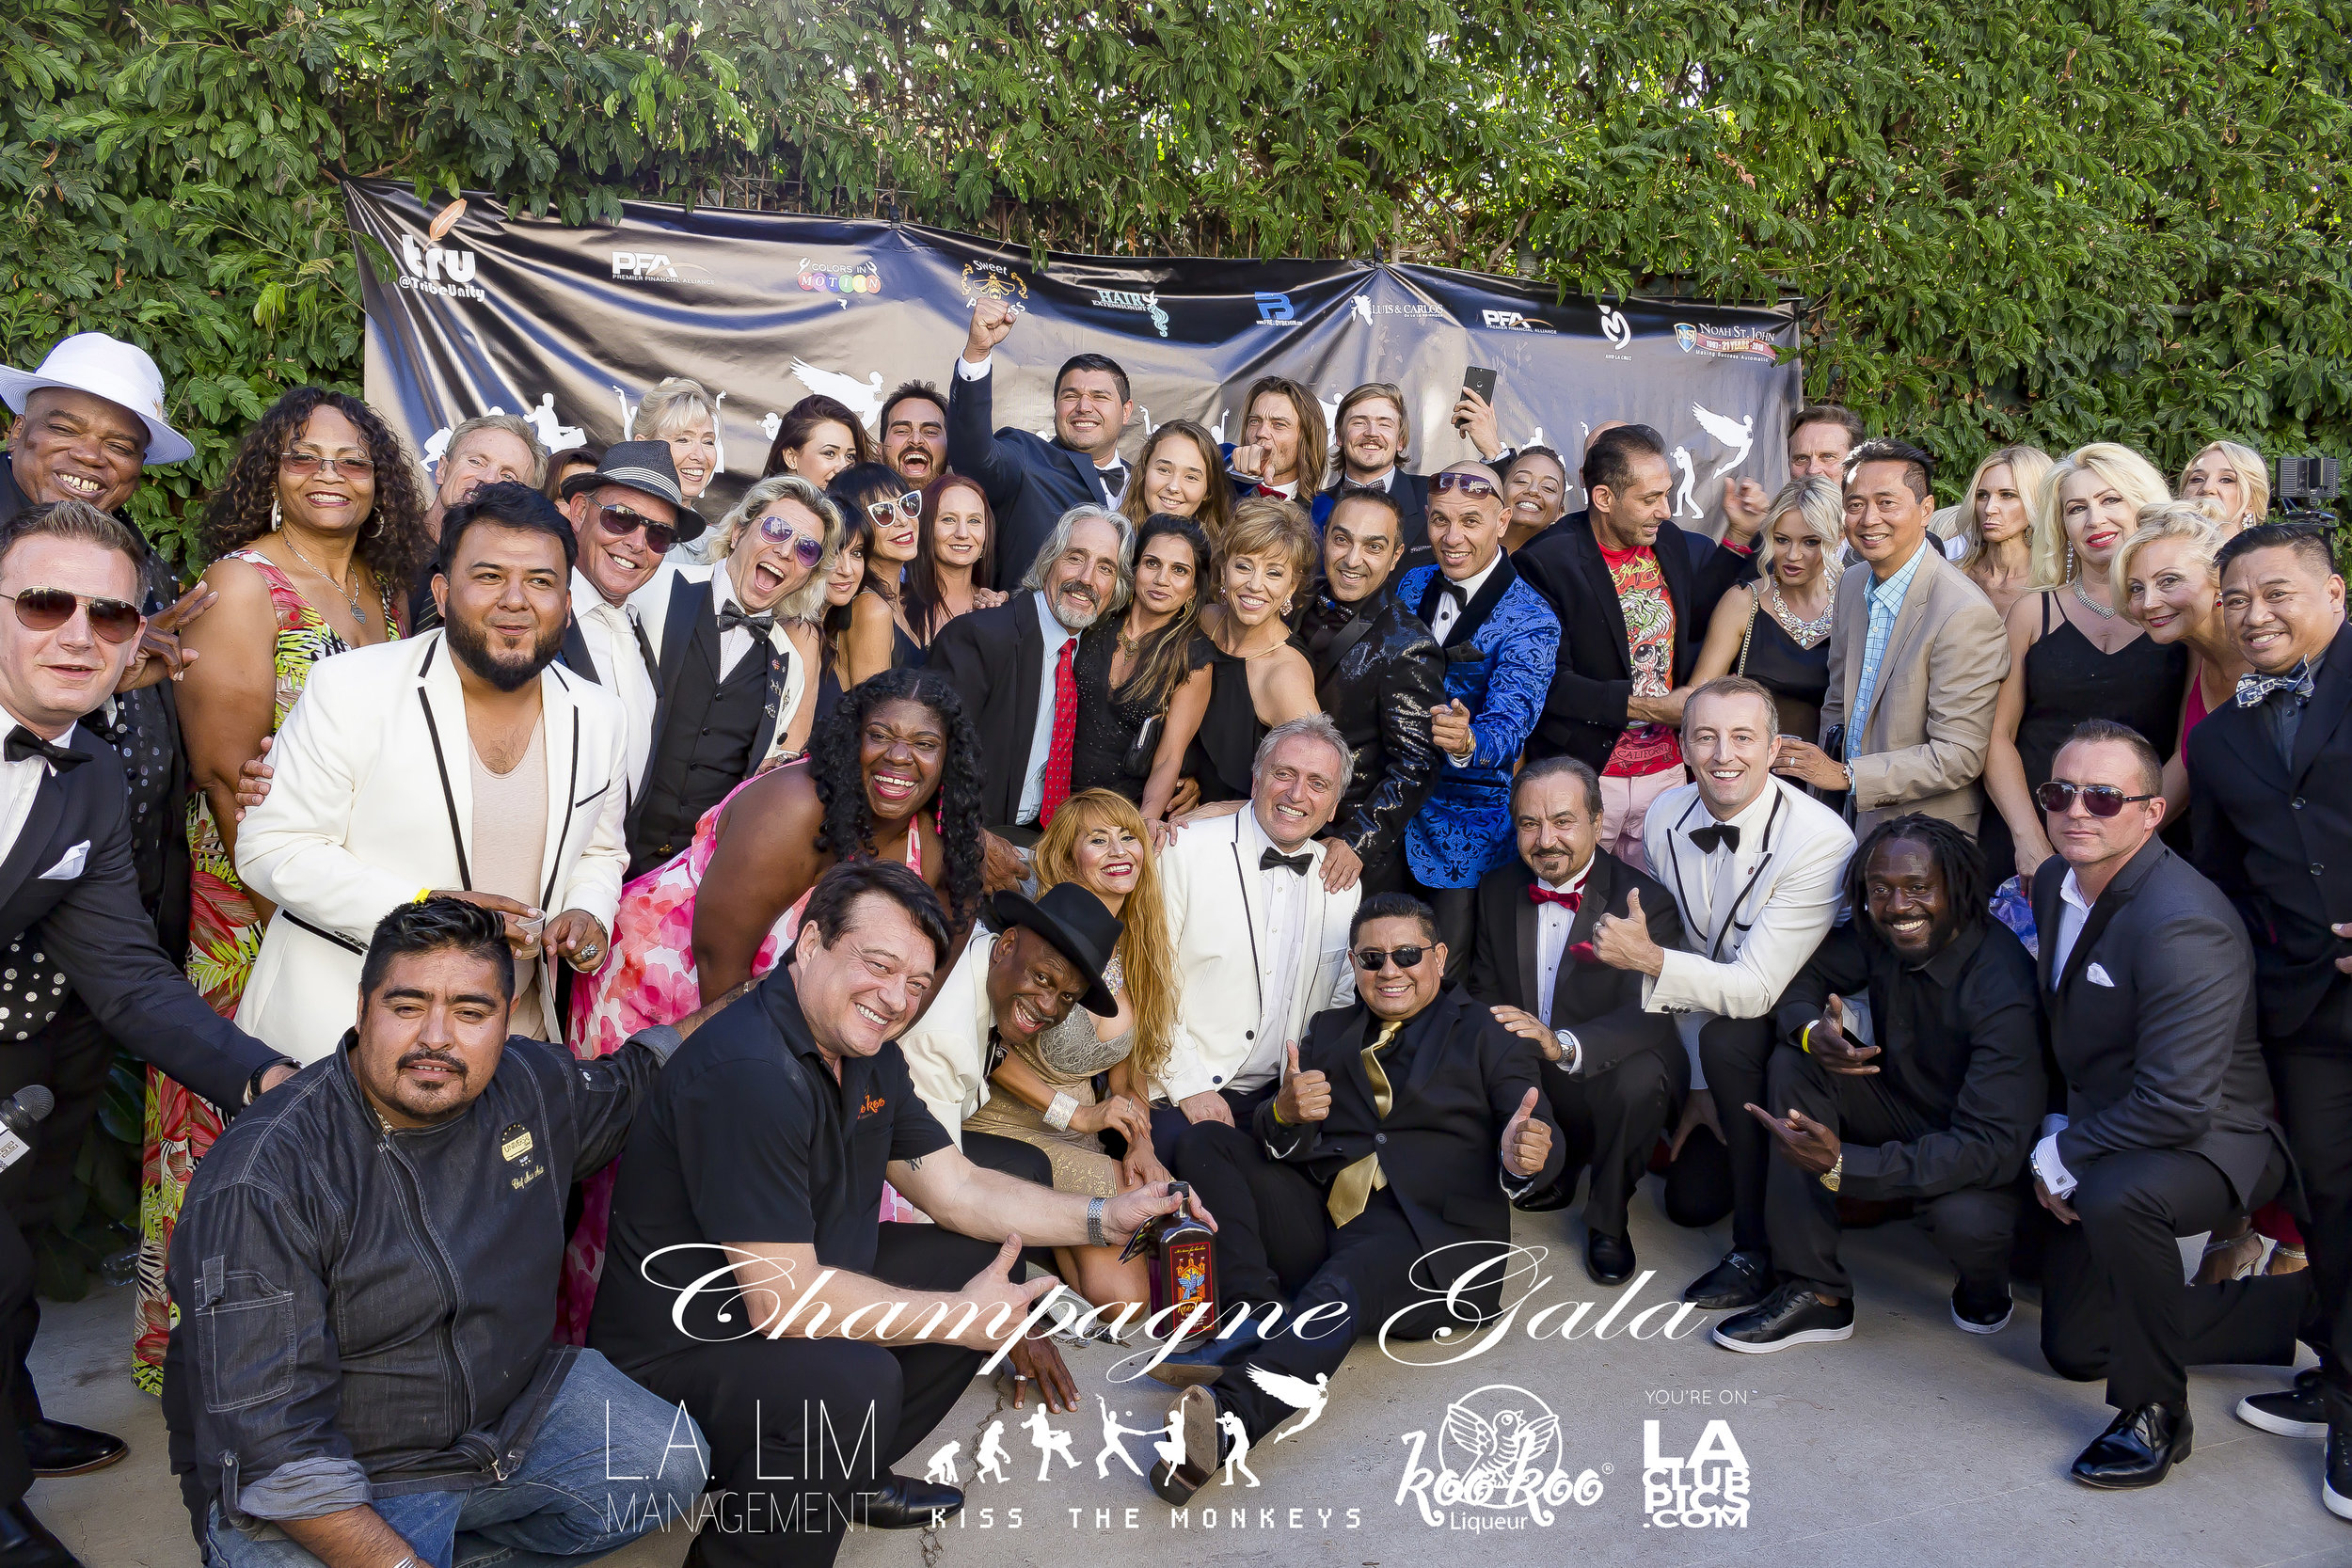 Kiss The Monkeys - Champagne Gala - 07-21-18_60.jpg